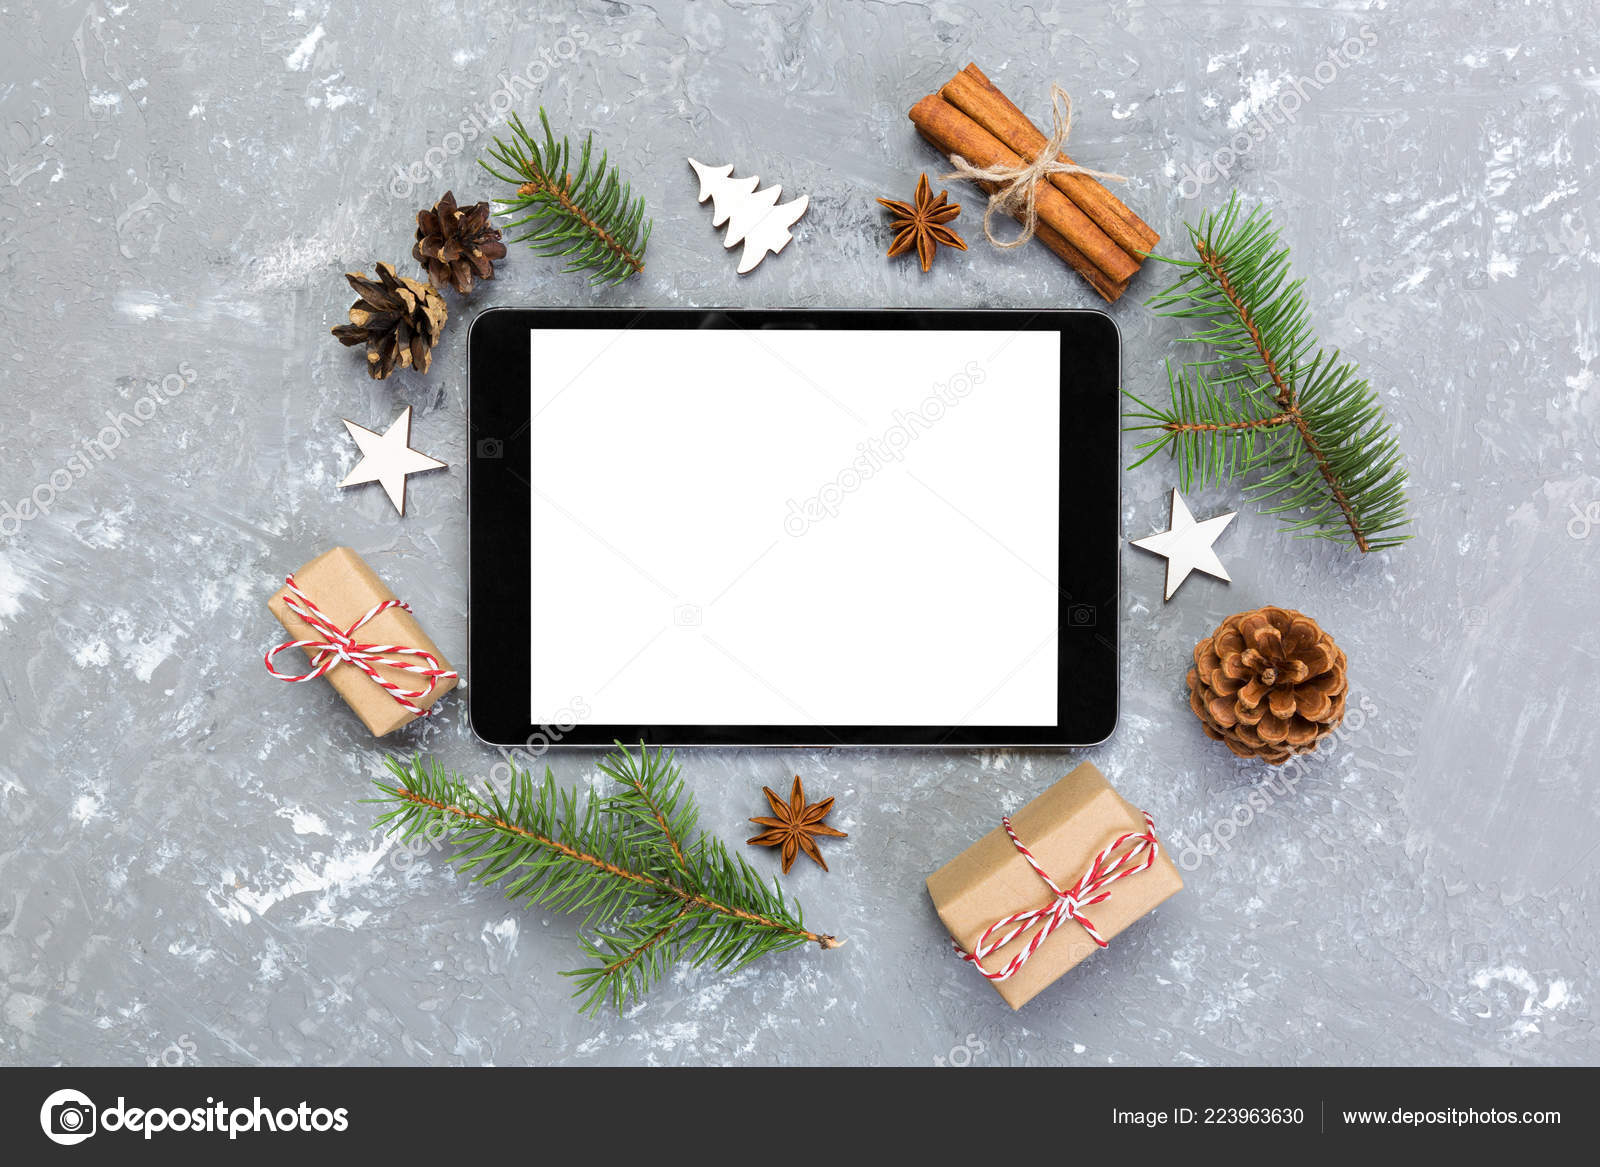 digital tablet mock rustic christmas gray cement background decorations app stock photo - Christmas Digital Decorations